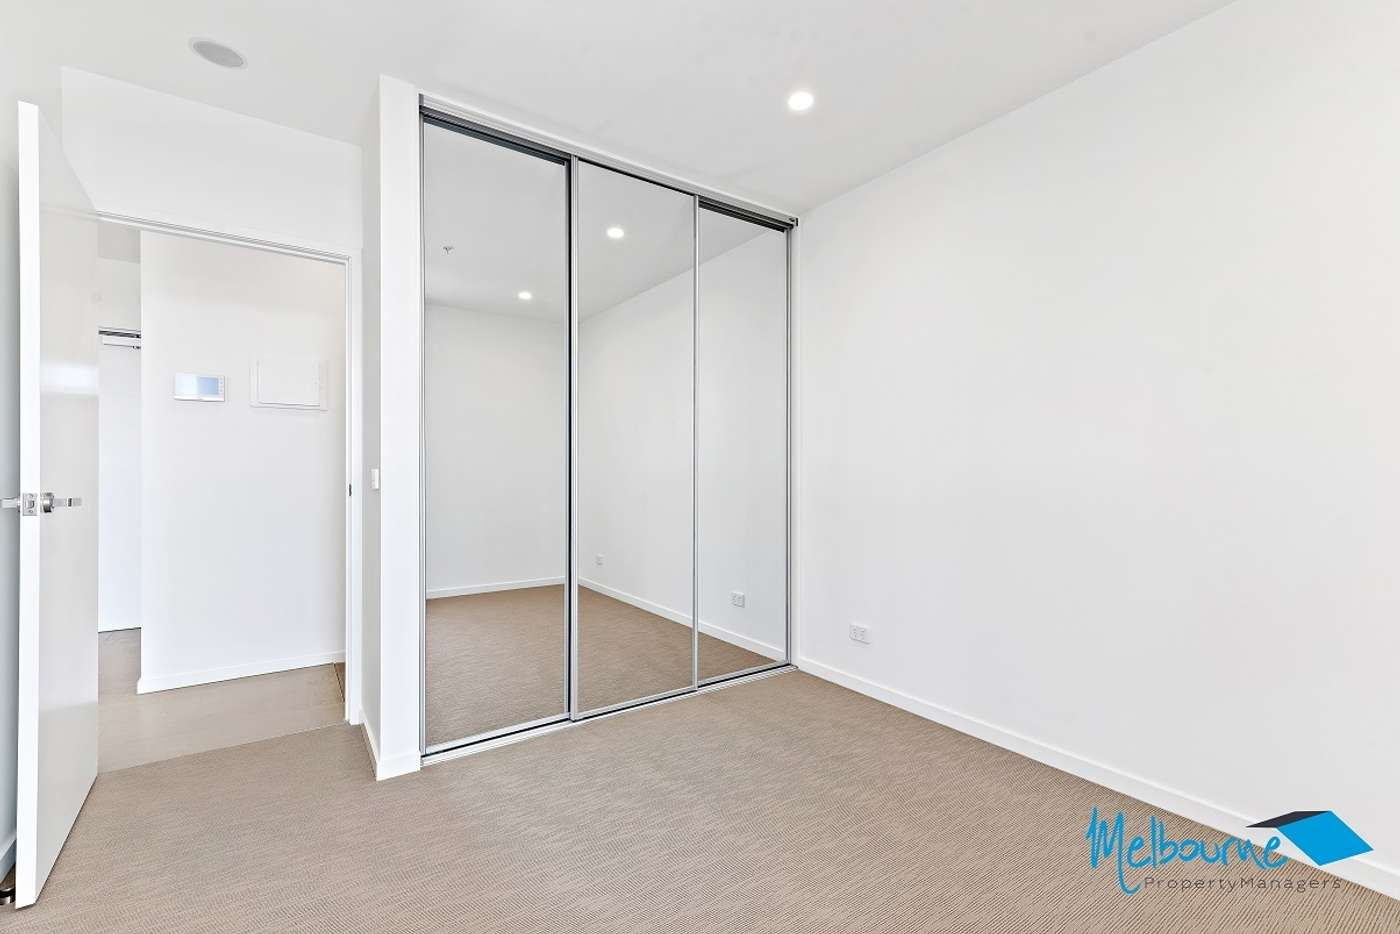 Seventh view of Homely apartment listing, 413/30 Bush Blvd, Mill Park VIC 3082